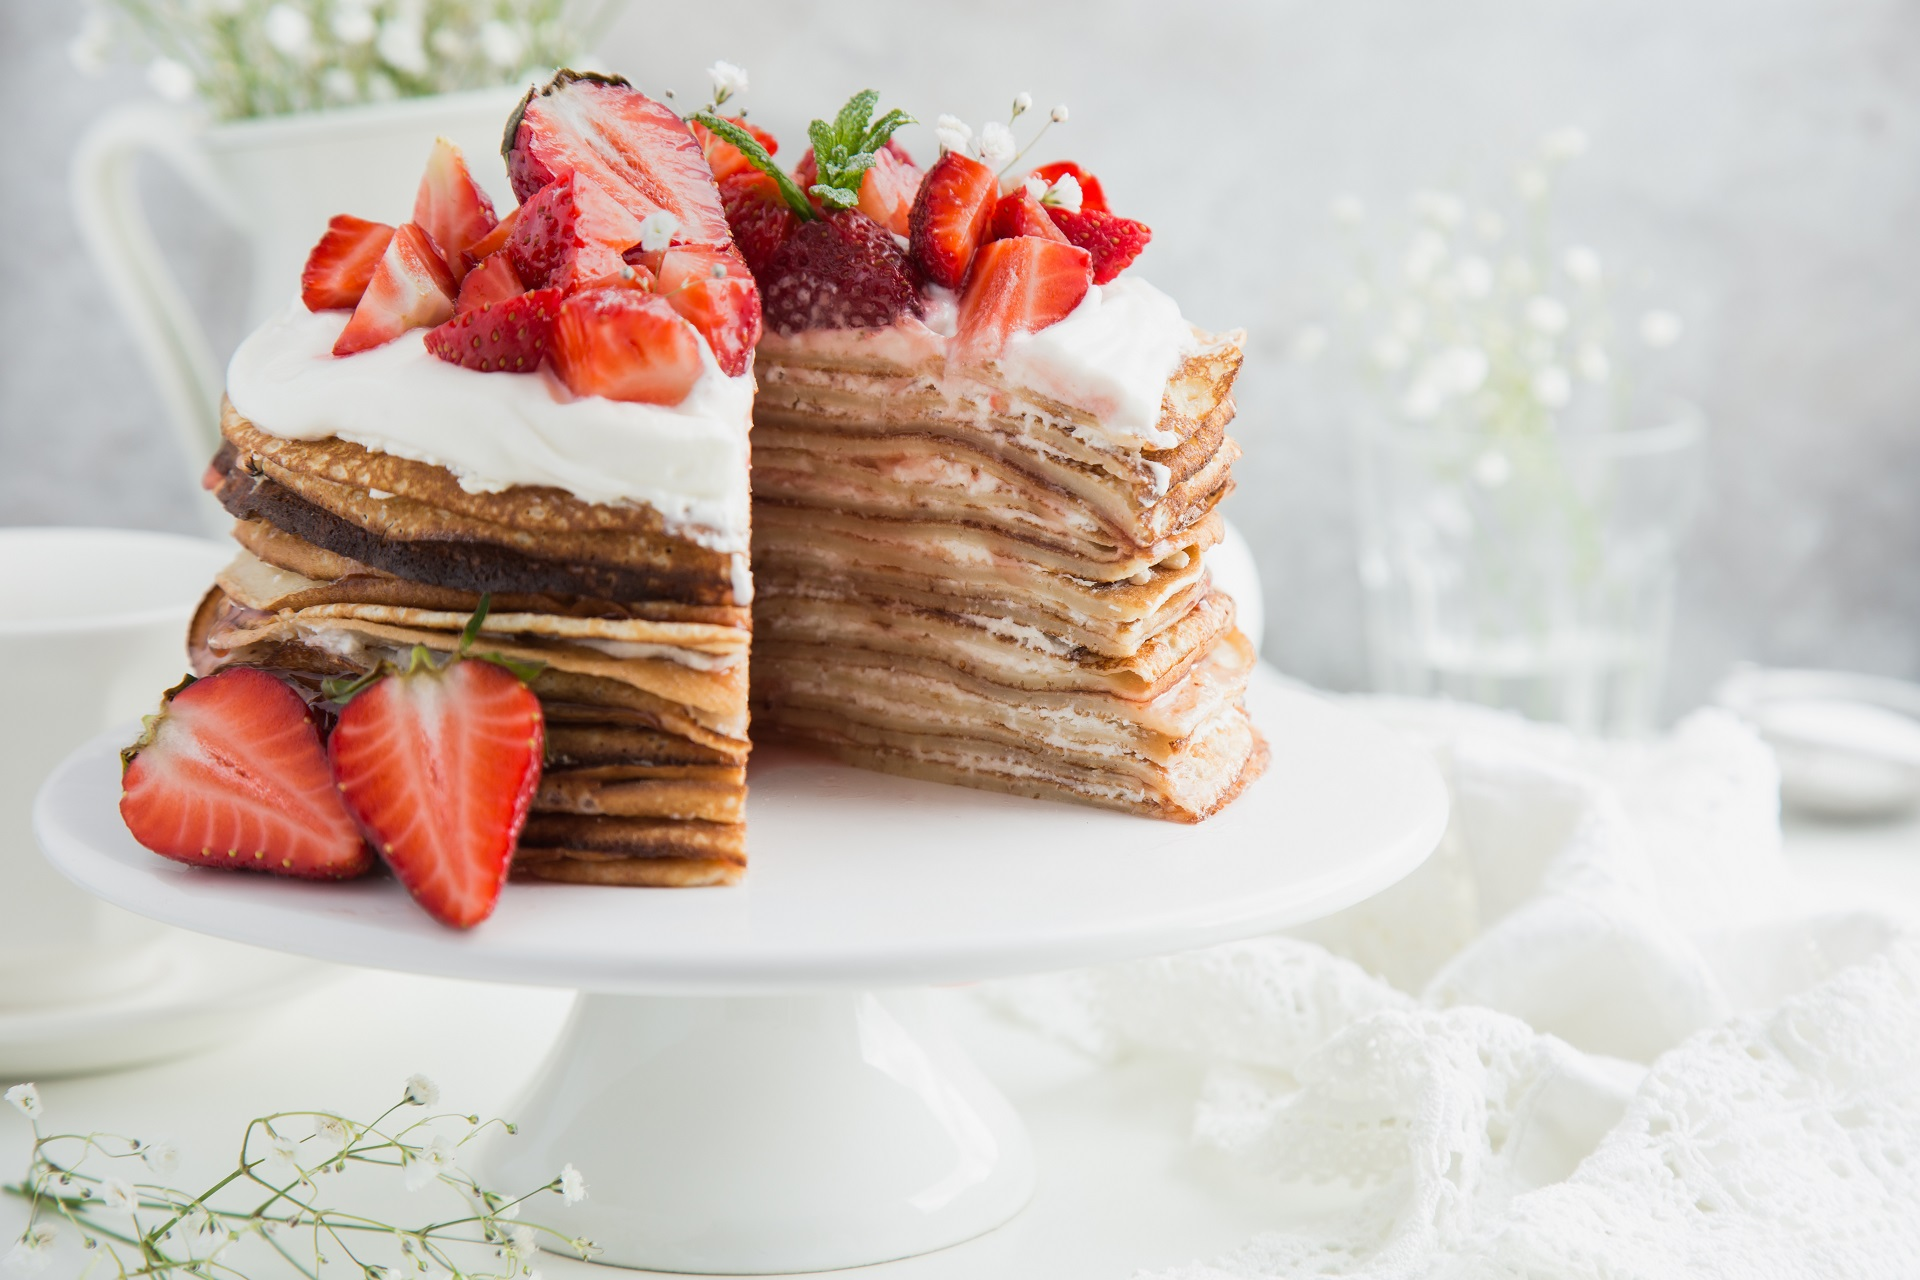 Crepe tortes instead of traditional birthday cakes.